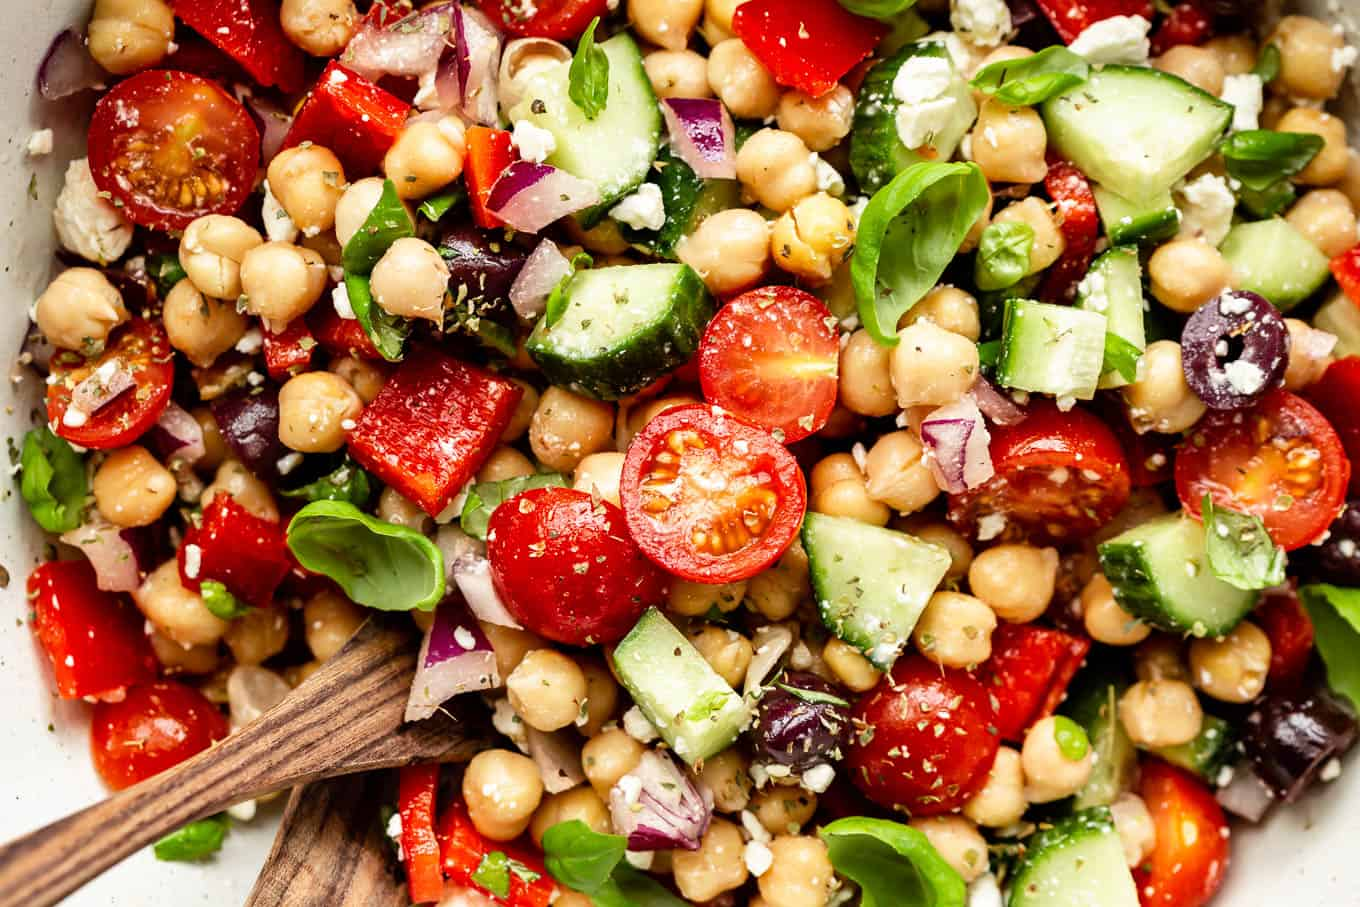 chickpeas, tomatoes and cucumbers tossed together